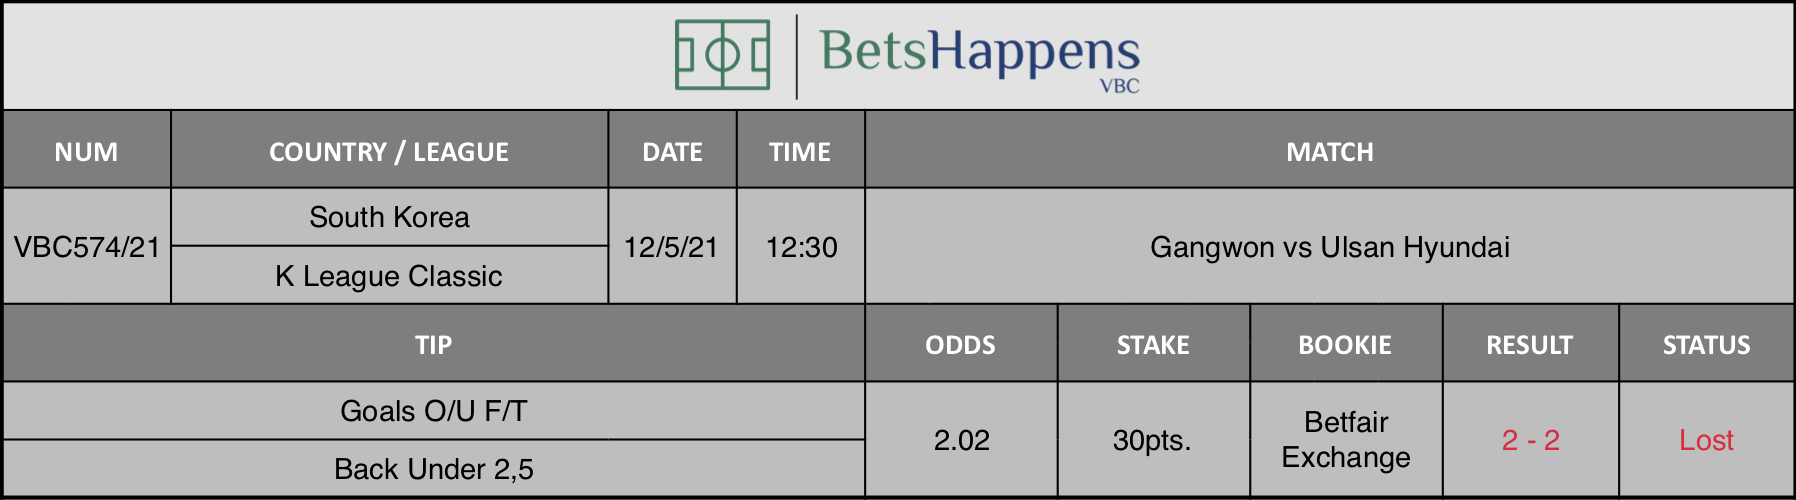 Results of our tip for the Gangwon vs Ulsan Hyundai match where Goals O/U F/T Back Under 2,5 is recommended.